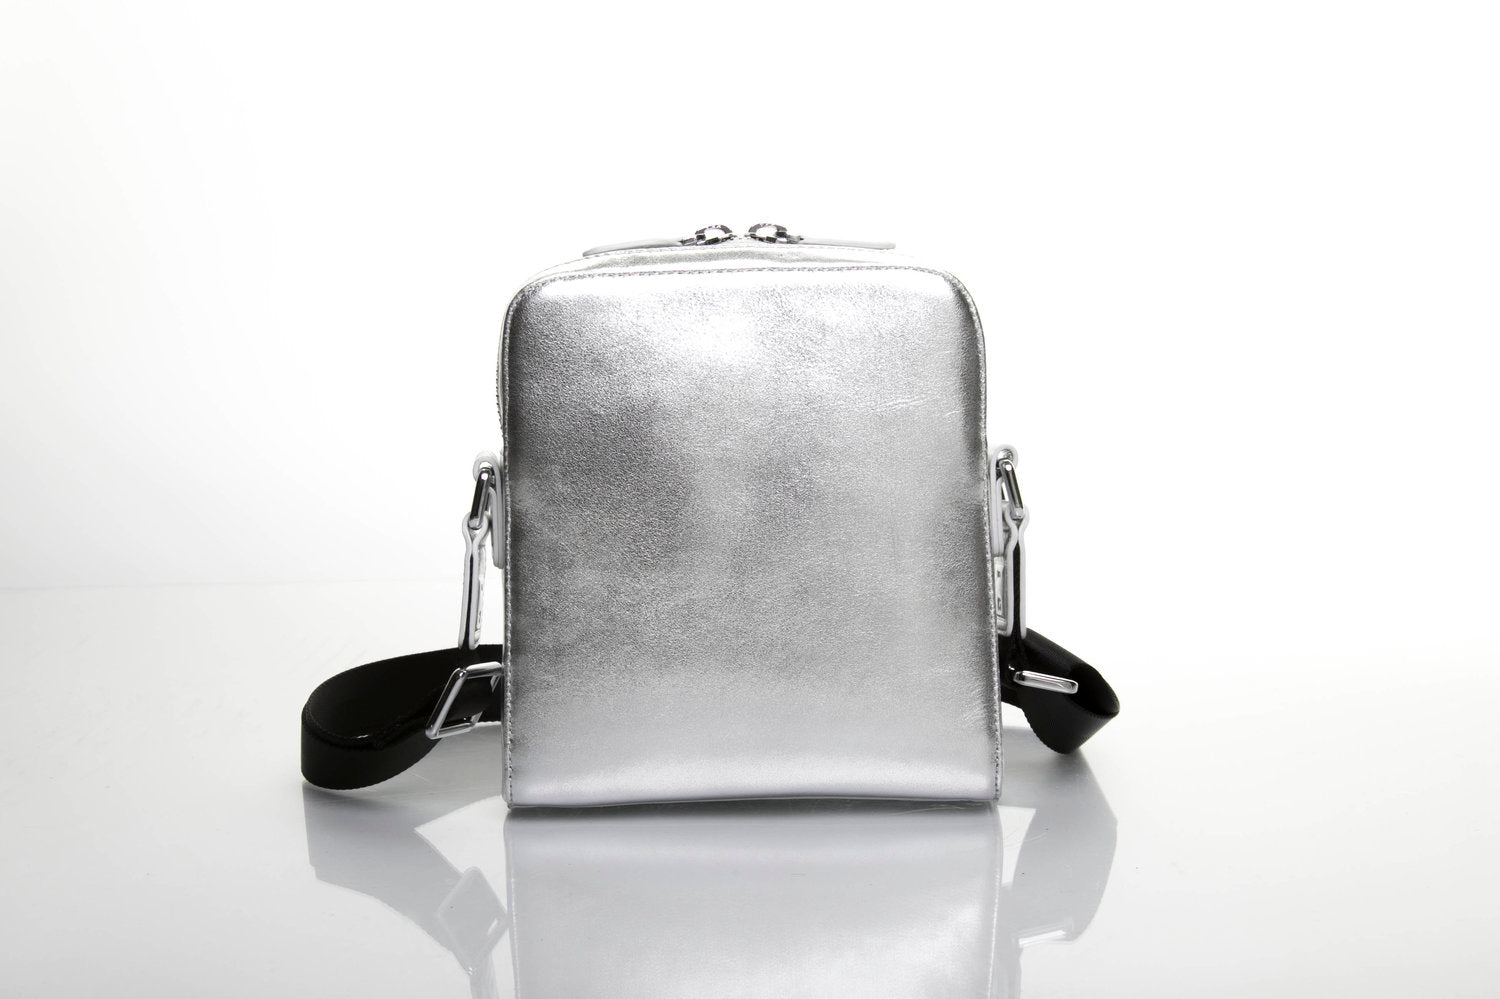 CB VIOR | Power Metallic Unisex Messenger Bag